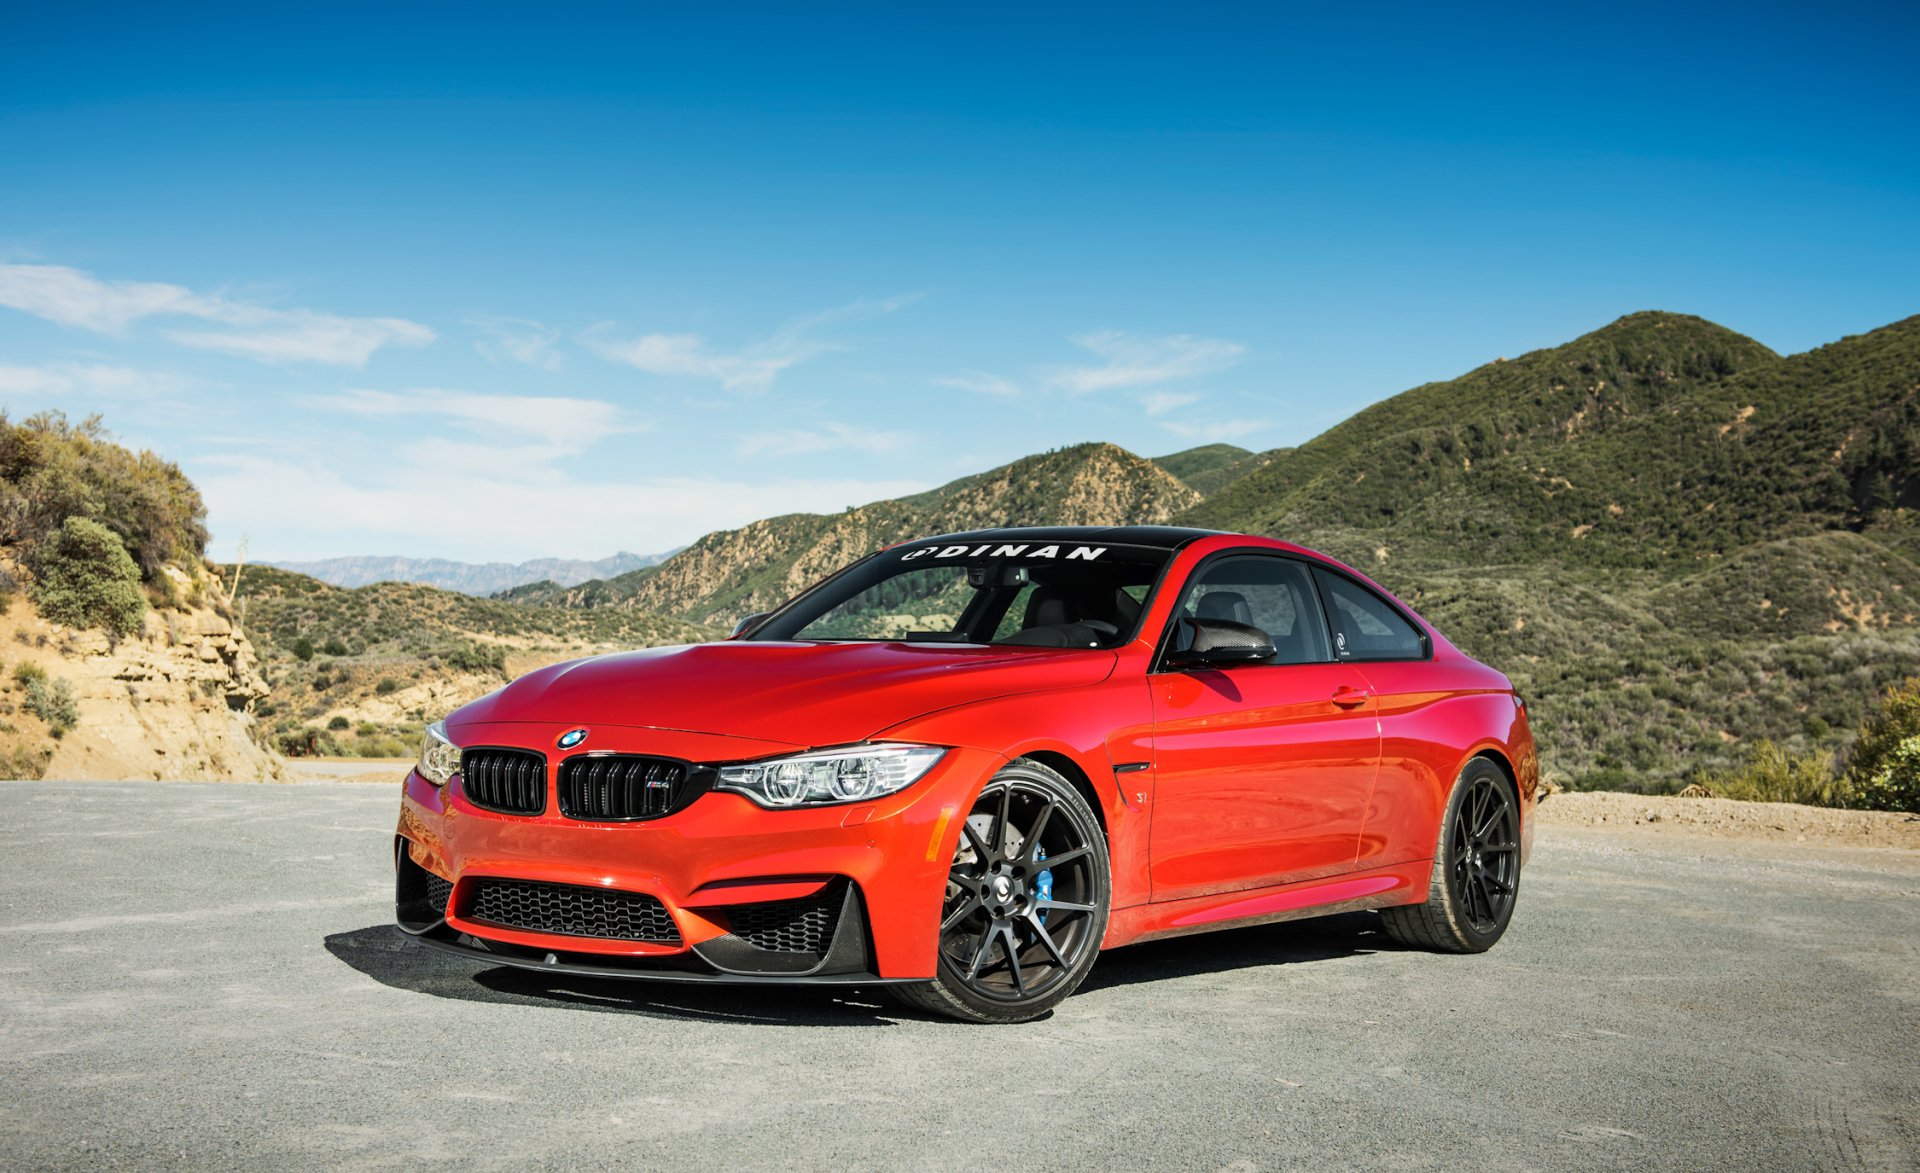 Vehicles - BMW M4  BMW Red Car Car Vehicle Grand Tourer Wallpaper